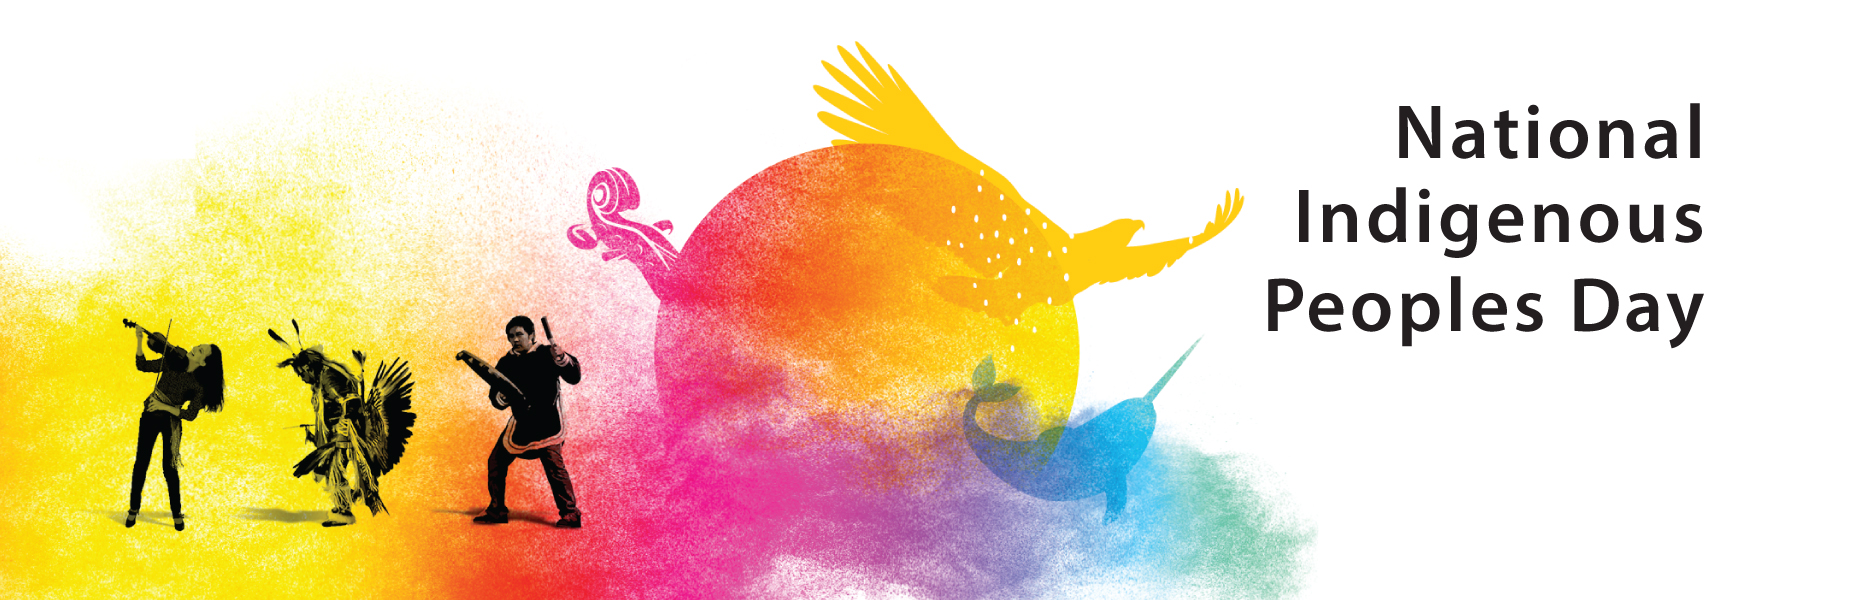 Colourful illustrations of an eagle, violin and narwhal. Text reads National Indigenous Peoples Day.